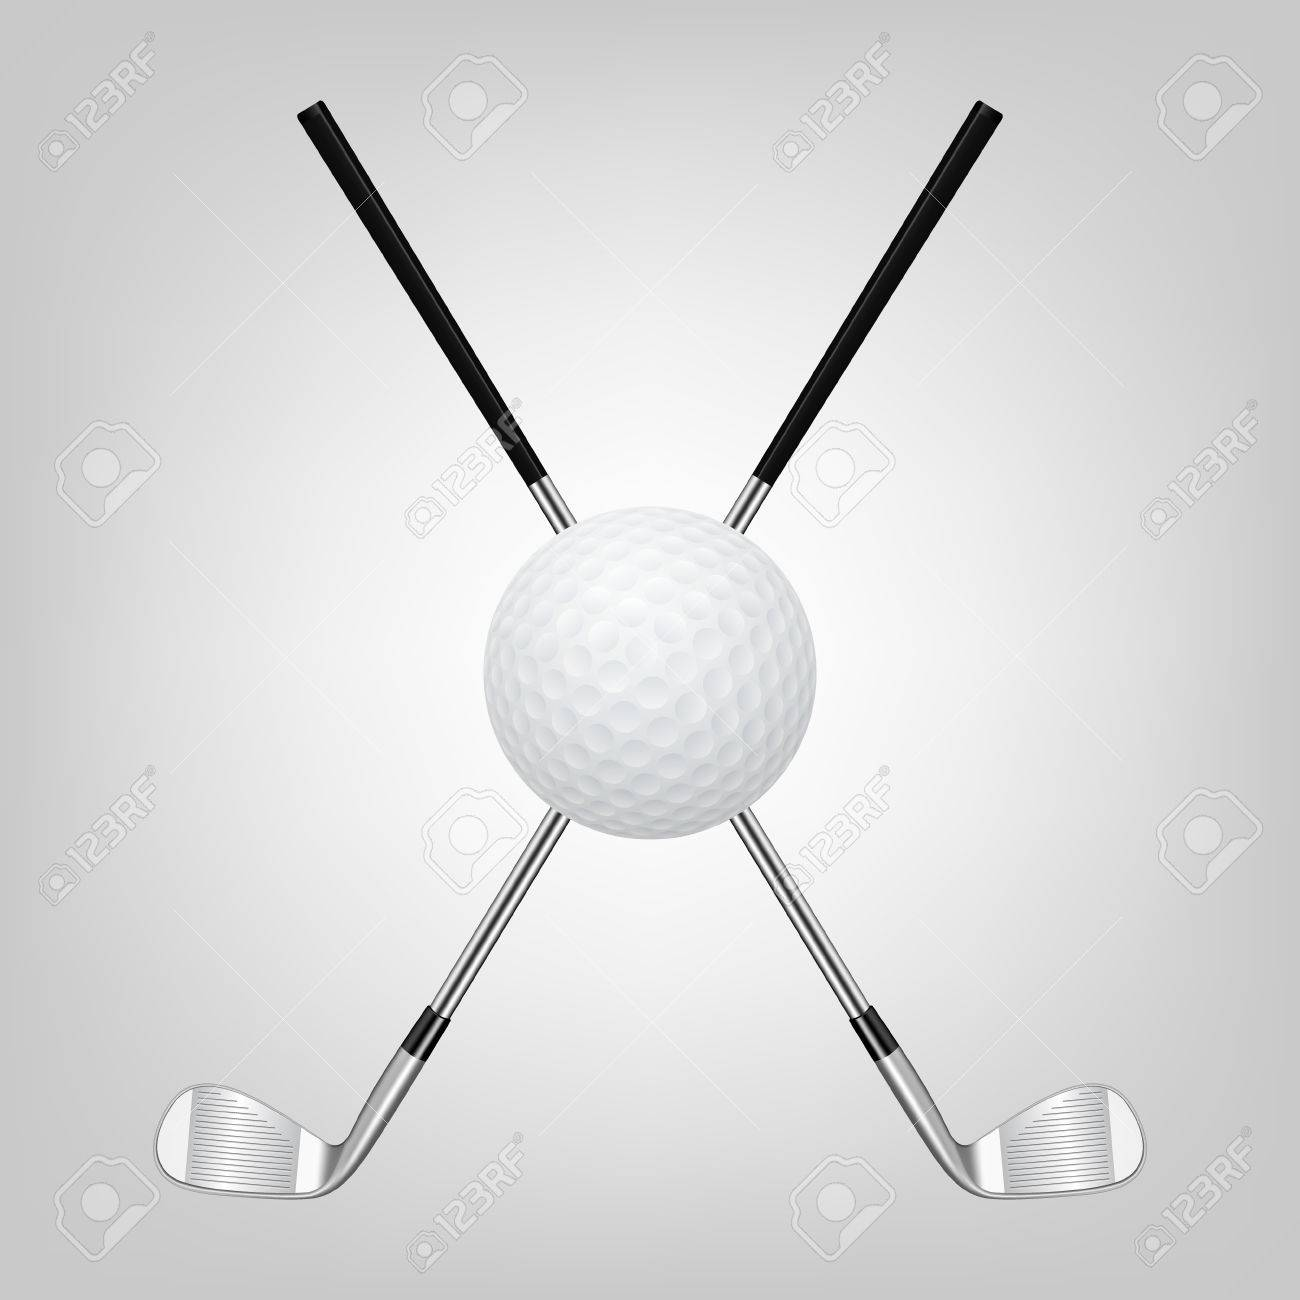 3d realistic golf ball and two crossed golf clubs. Vector illustration. - 38547461